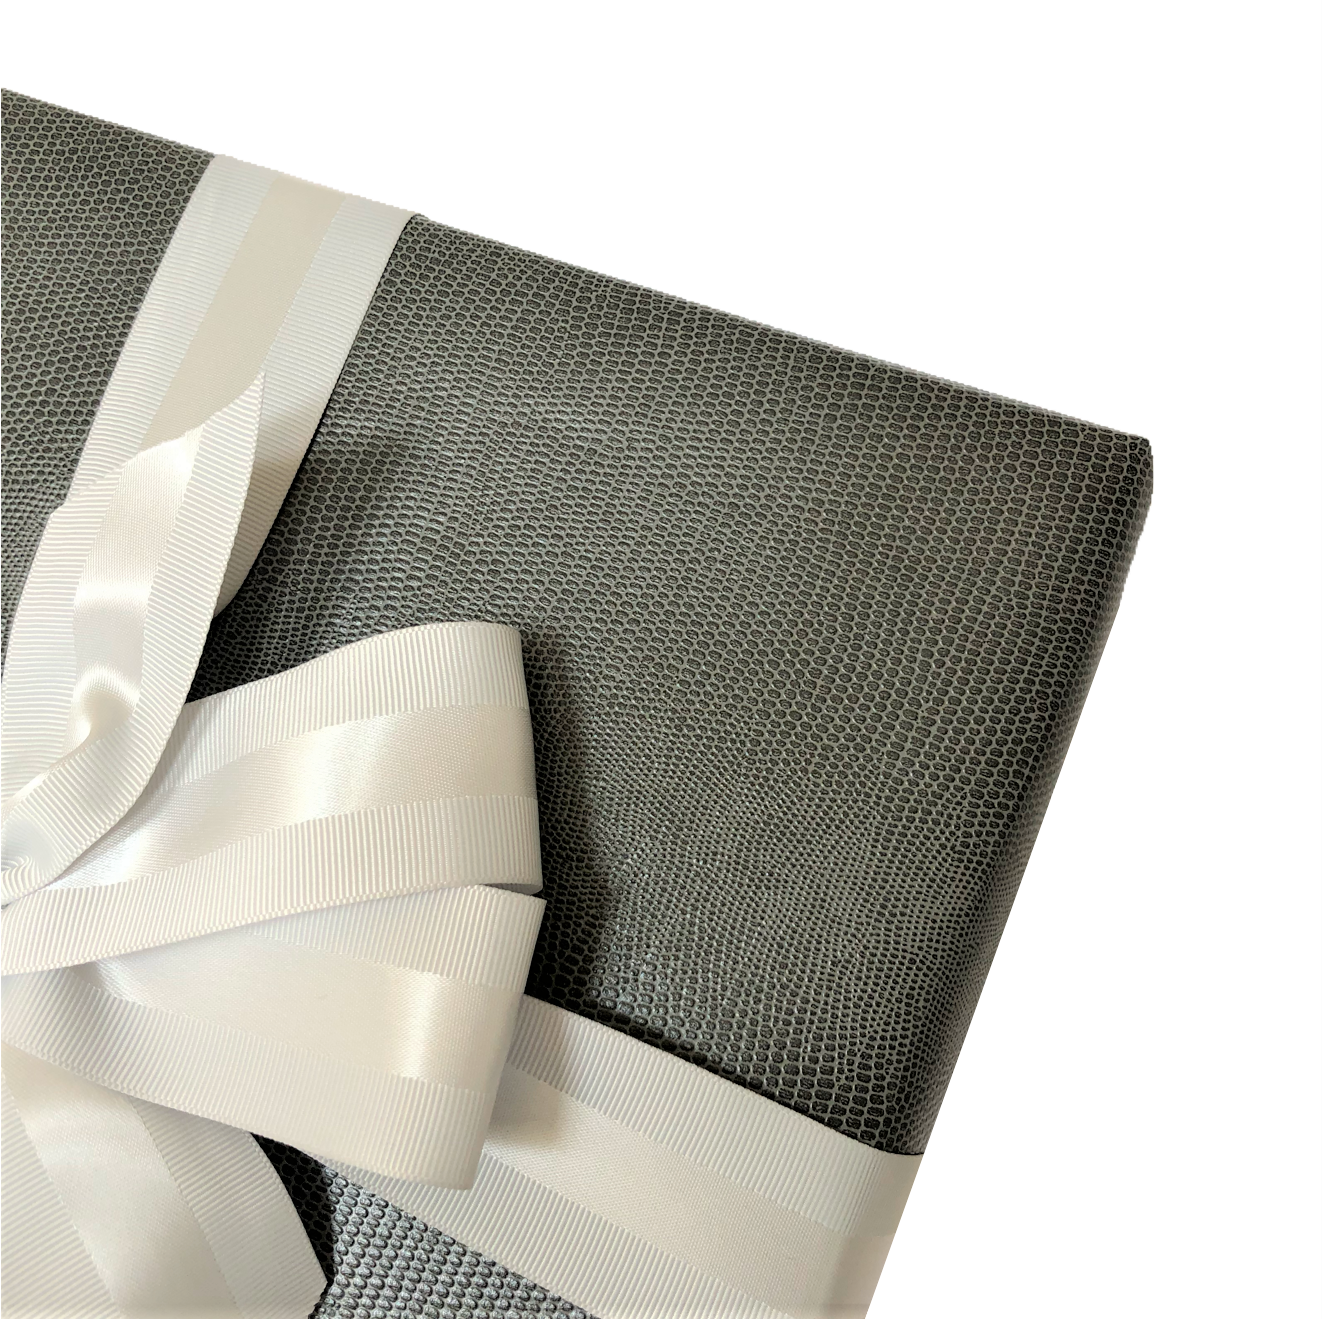 Gray Faux Leather Gift Wrap Paper by Urban Vintage LA Close-Up